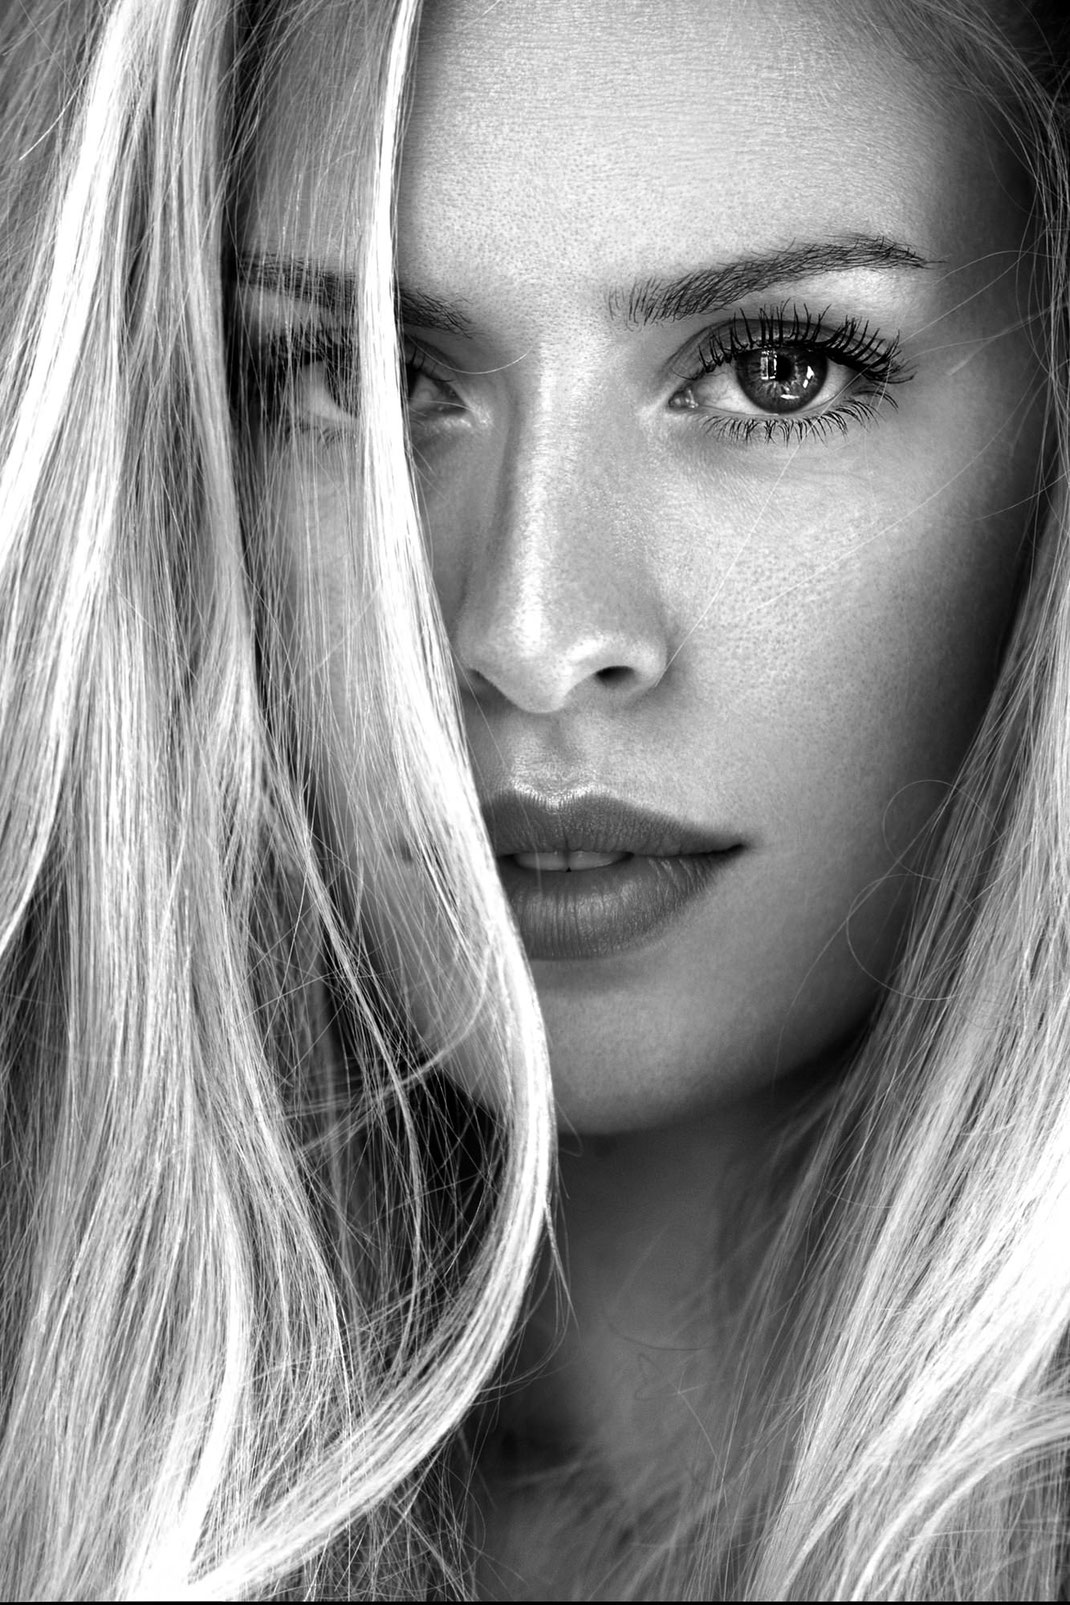 Portrait - Markus Hertzsch - B&W - Girl - Model - Bildlook - Face - Pose - Art - Hair - Eyes - Blonde - Lisa